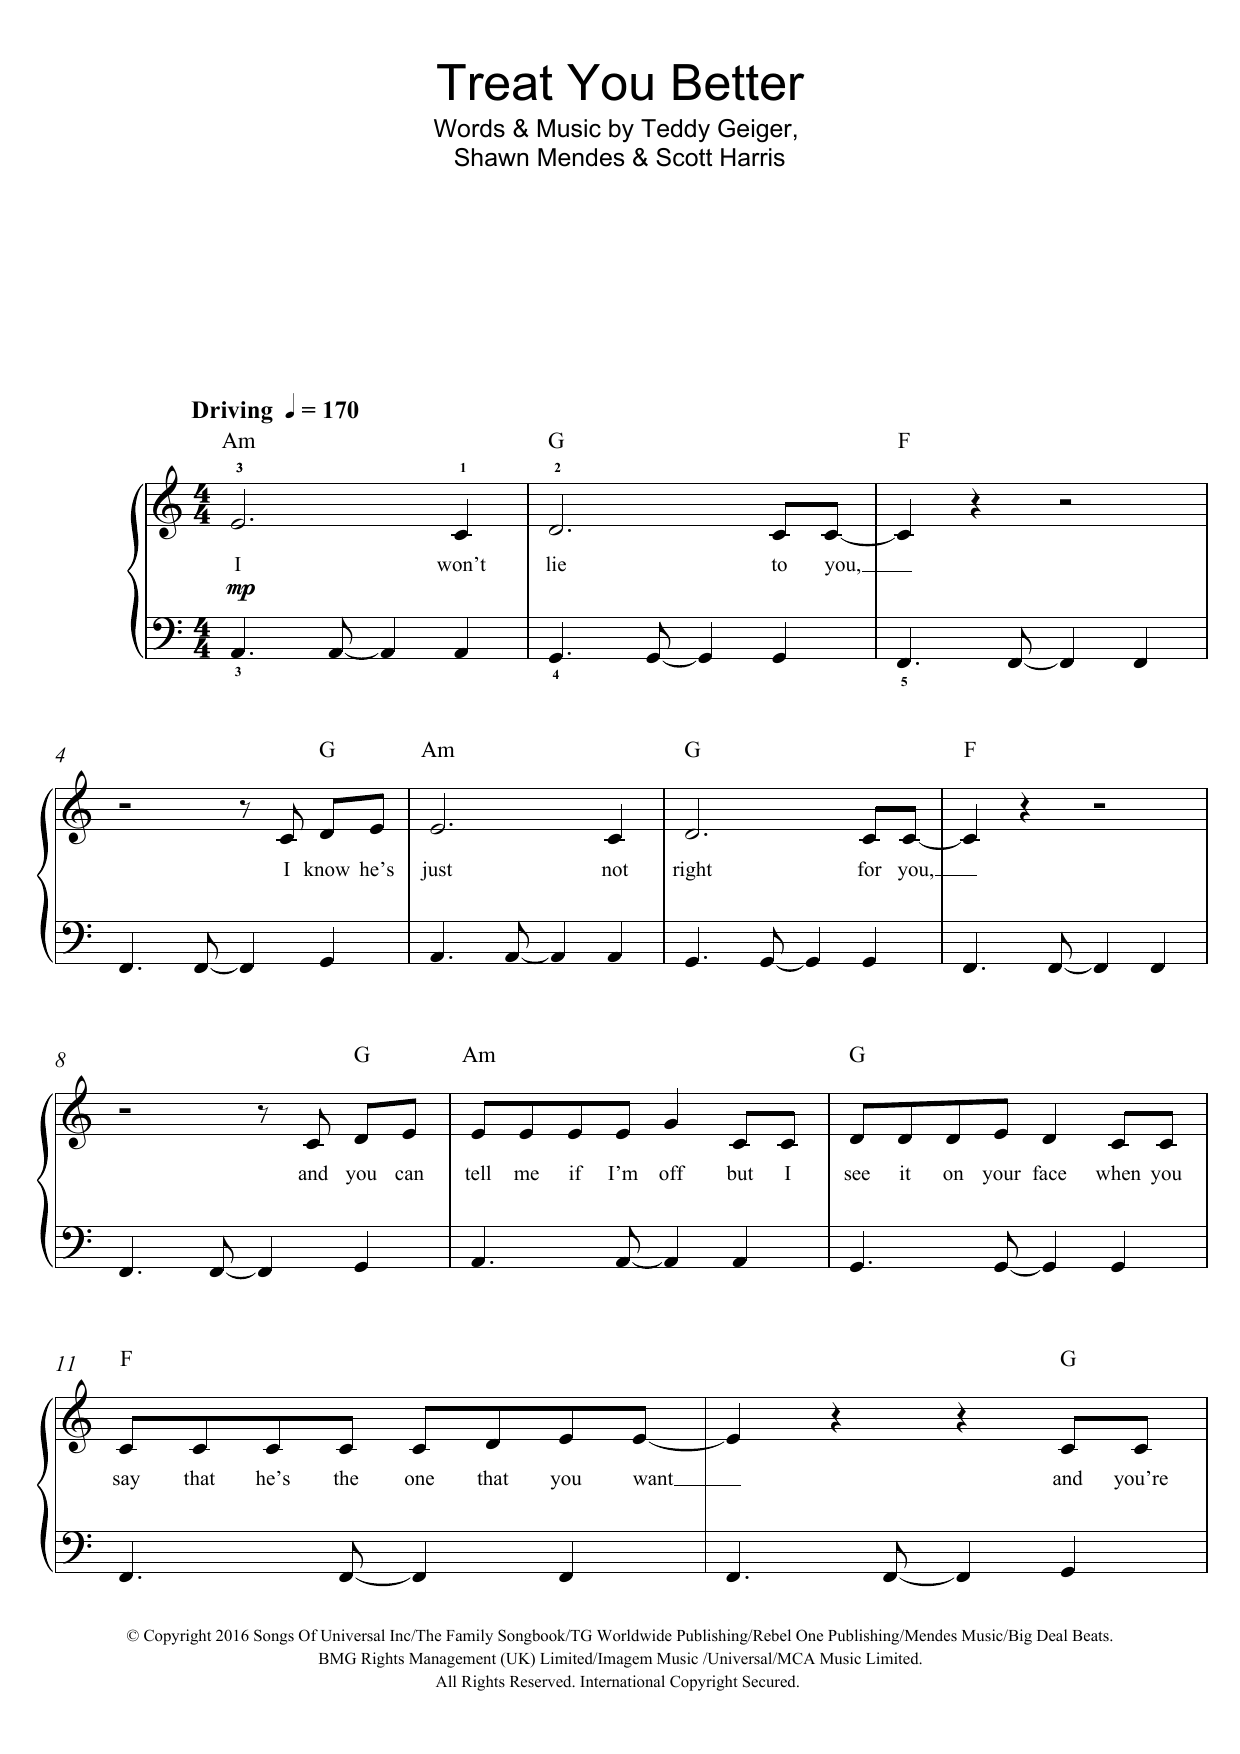 Treat You Better Sheet Music By Shawn Mendes For Piano Vocal Guitar Noteflight Marketplace Sheet Music Notes Shawn Mendes Sheet Music